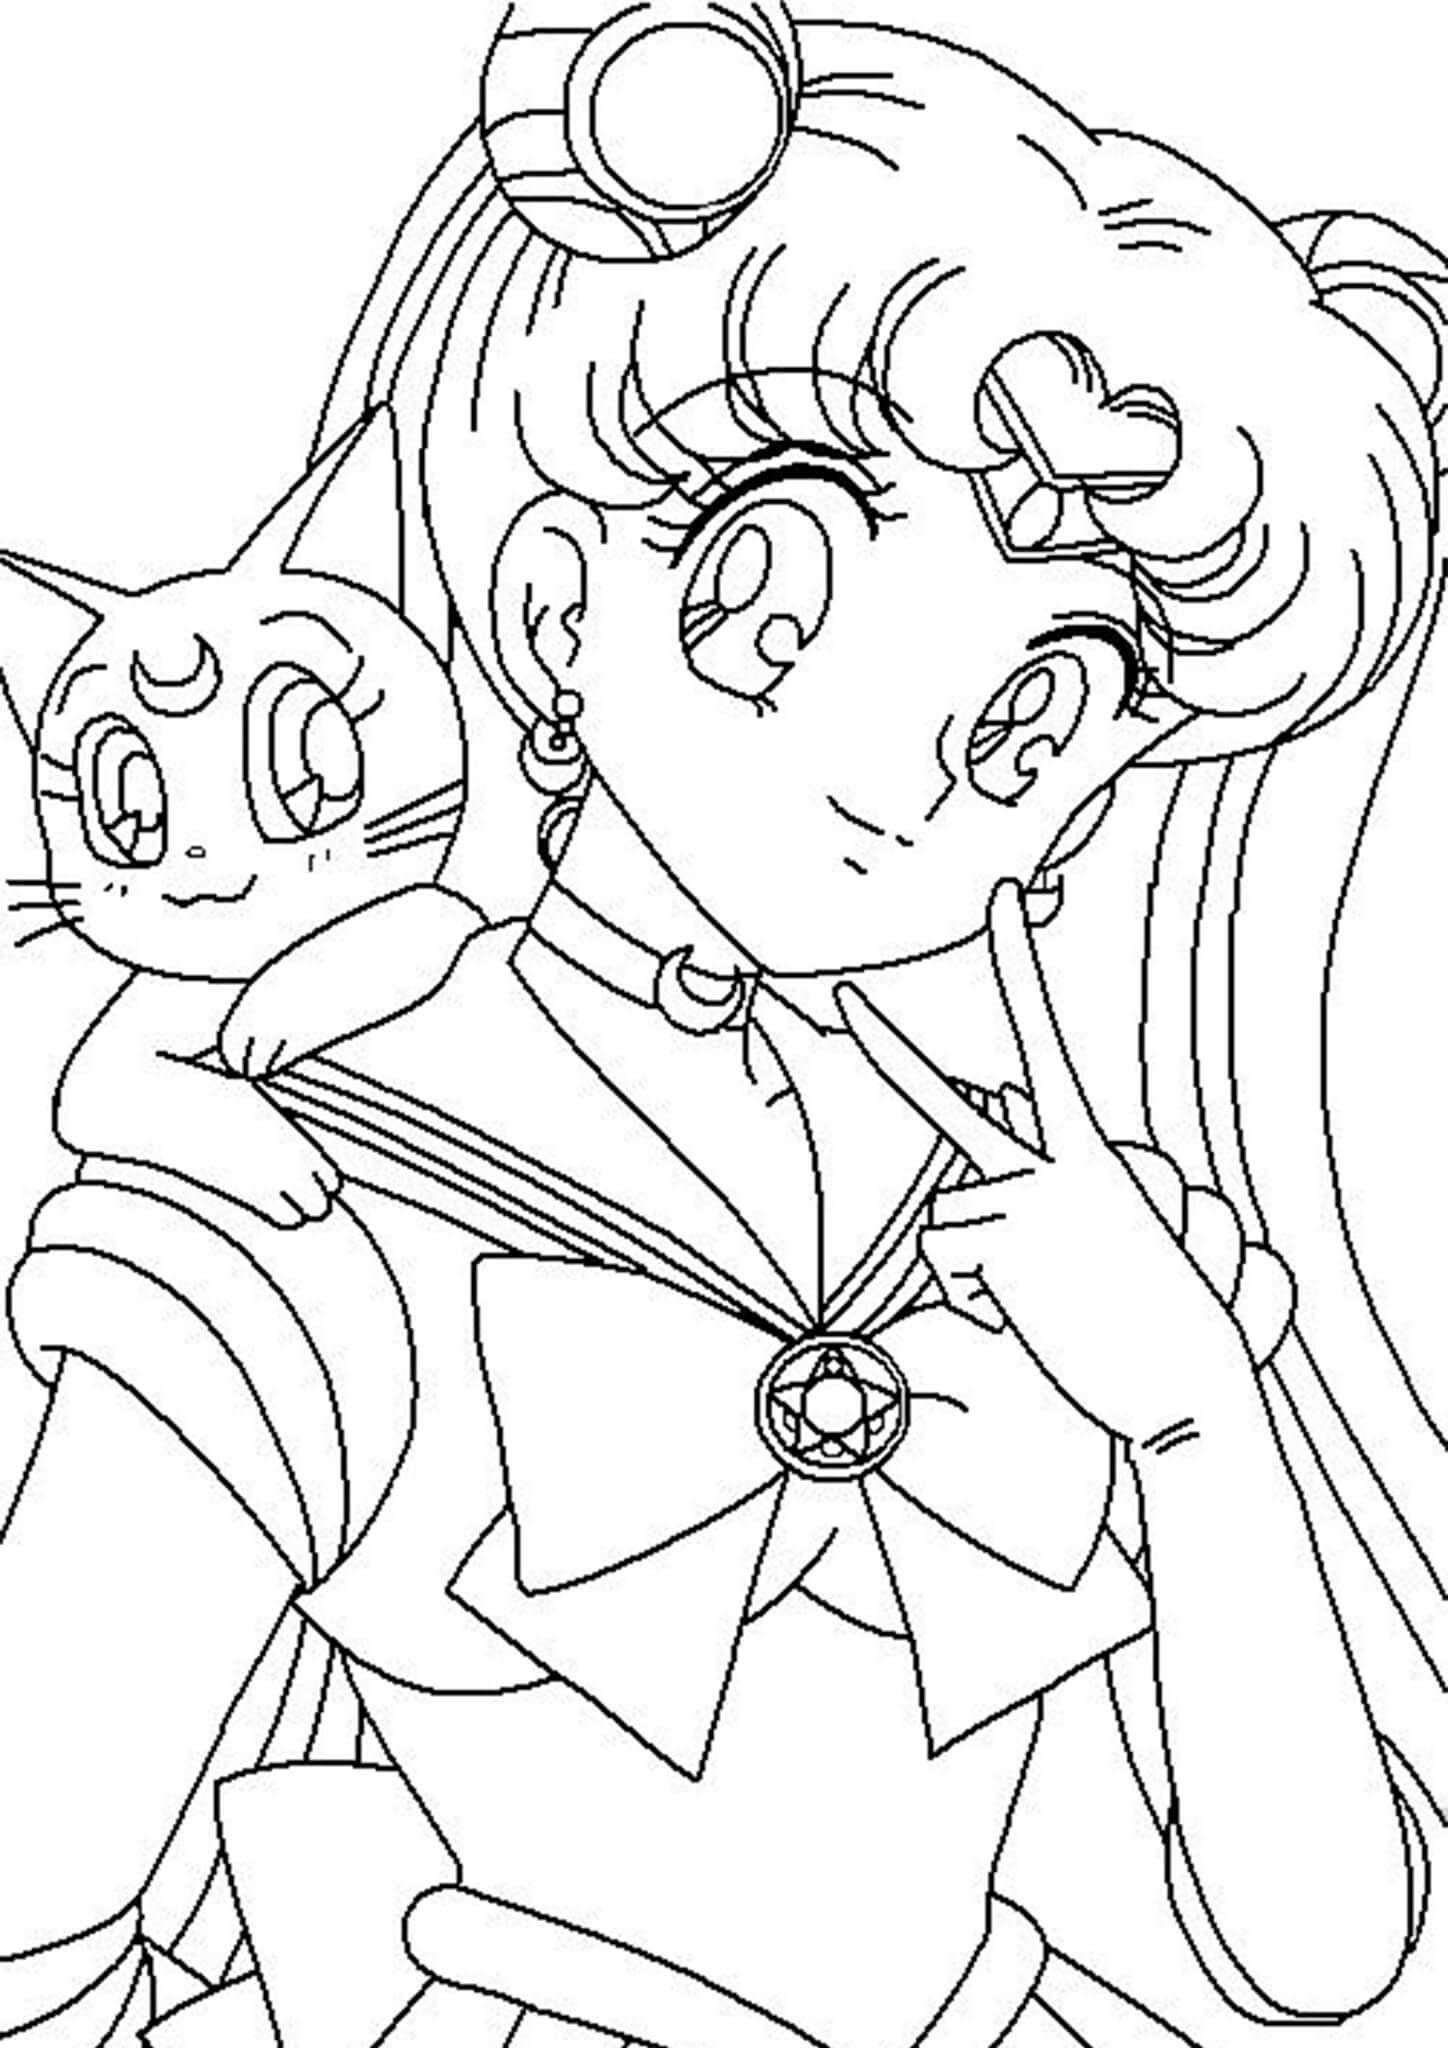 Free Easy To Print Sailor Moon Coloring Pages Moon Coloring Pages Sailor Moon Coloring Pages Sailor Moon Tattoo